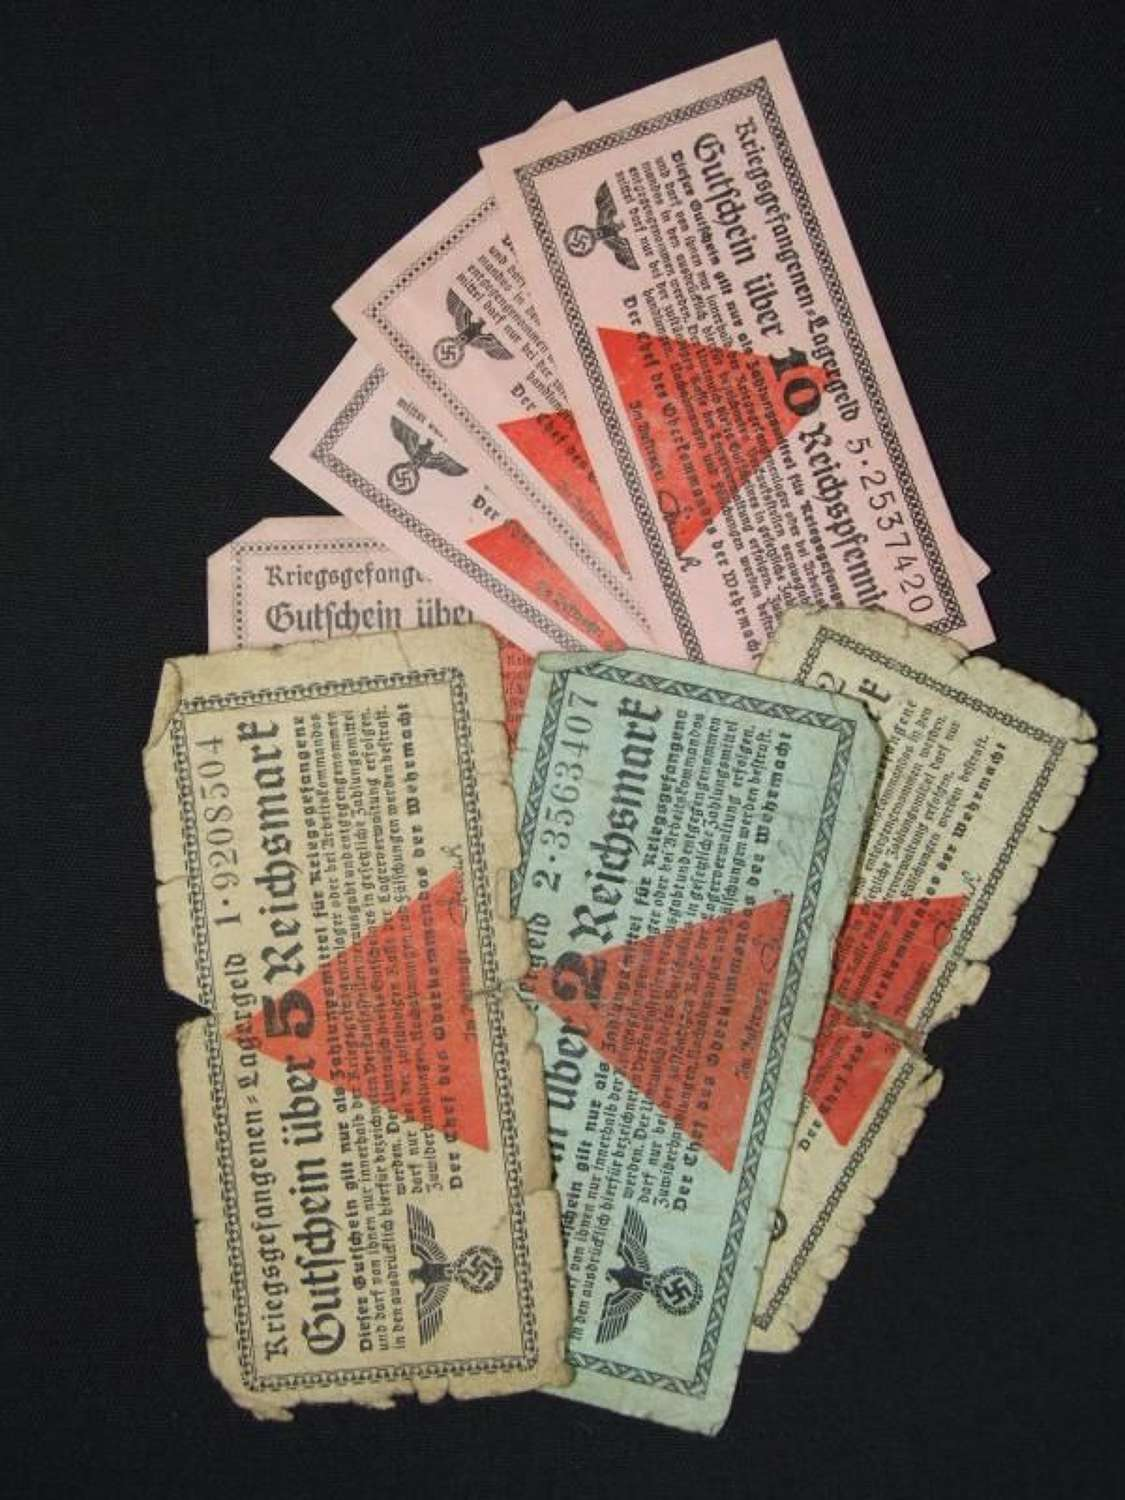 A collection of 8 Lagergeld  (Camp Money) notes